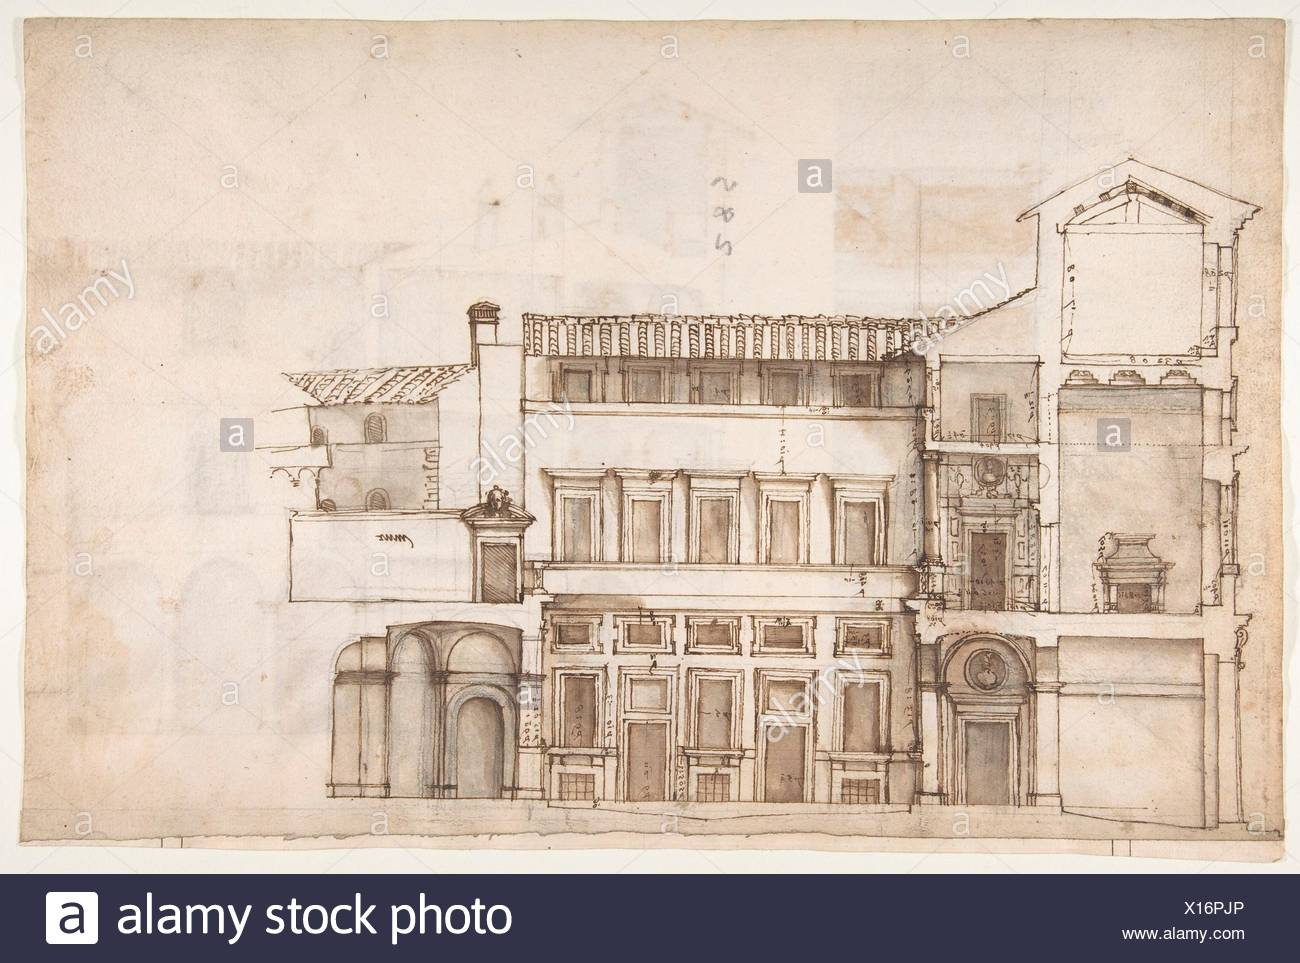 Palazzo Pirro in Rome, section (recto) Palazzo Pirro in Rome, sections; profiles (verso). Draftsman: Drawn by Anonymous, French, 16th century; Date: - Stock Image